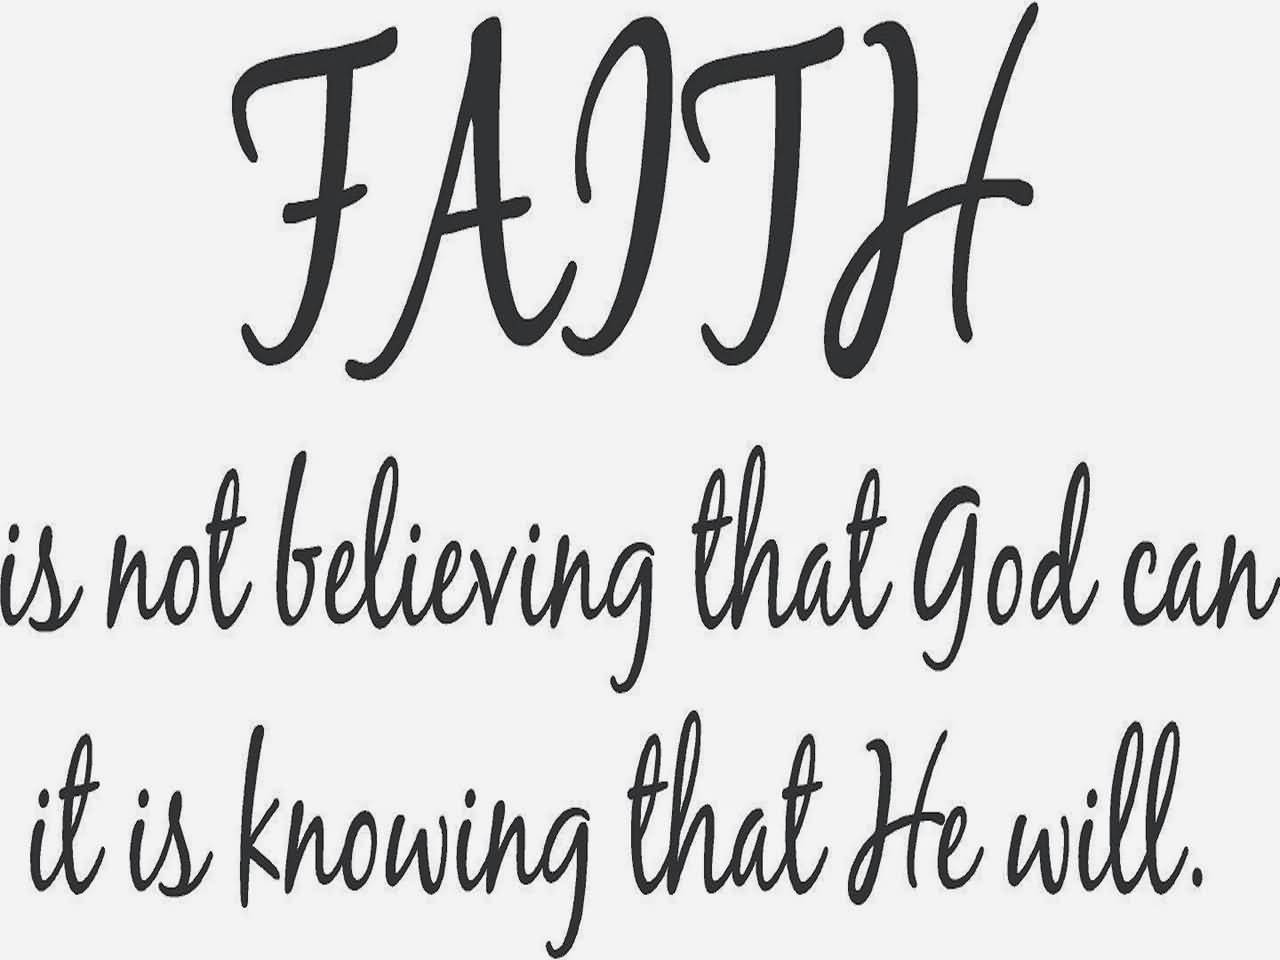 Faith is not believing that God can it is